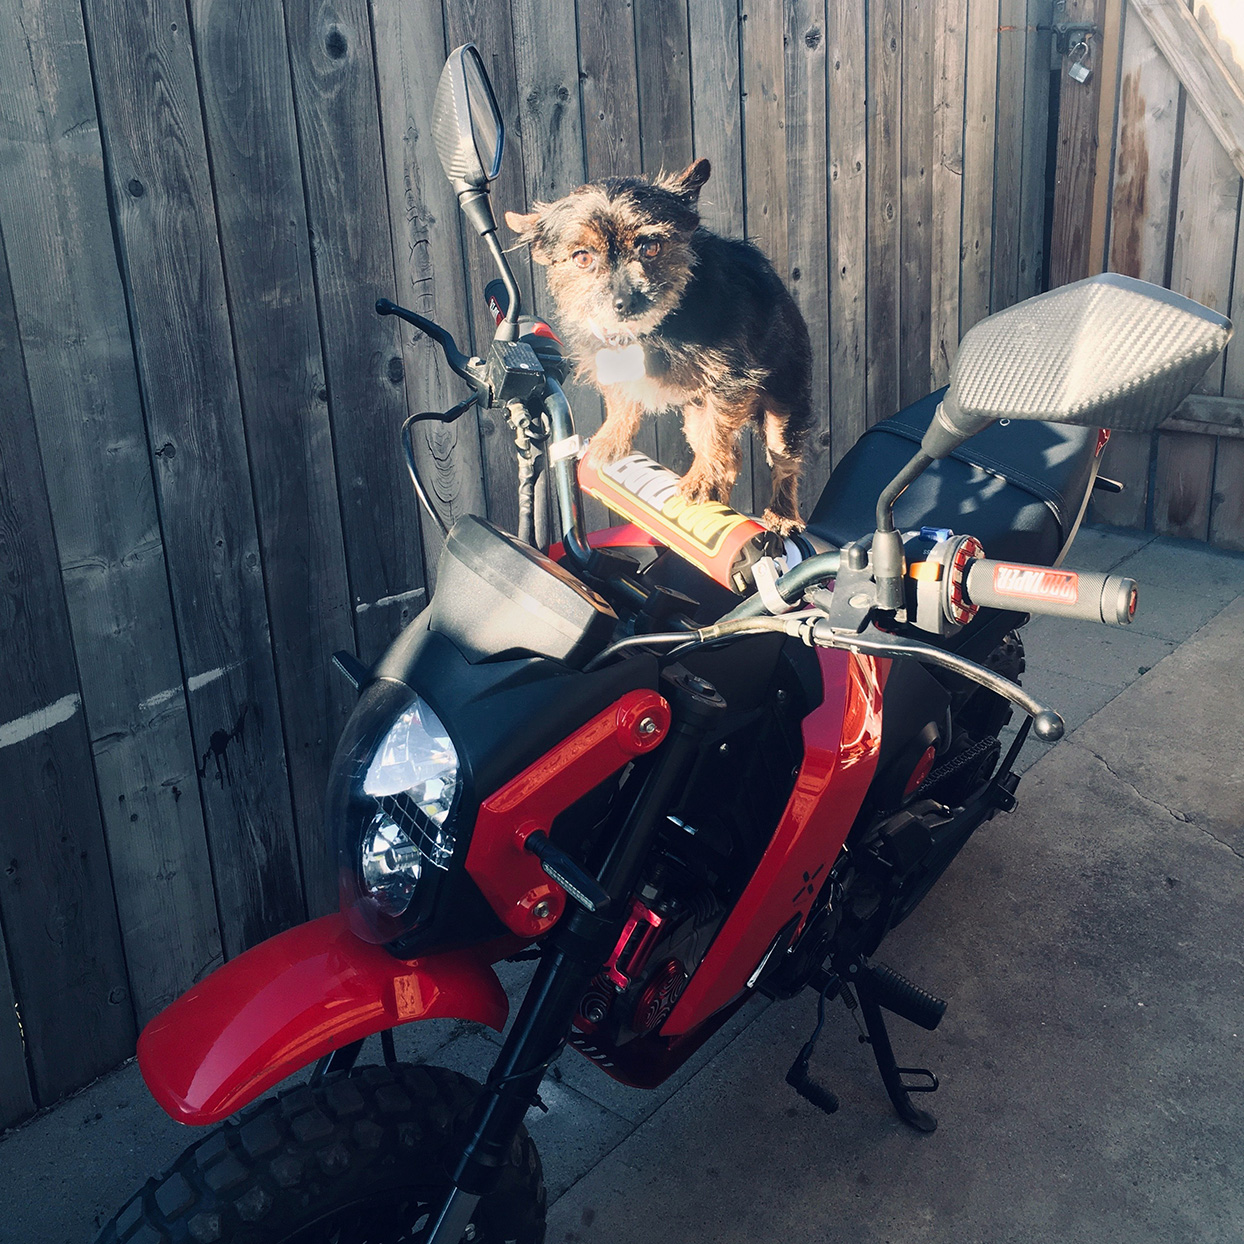 Yorkie puppy stands on motorcycle handlebars